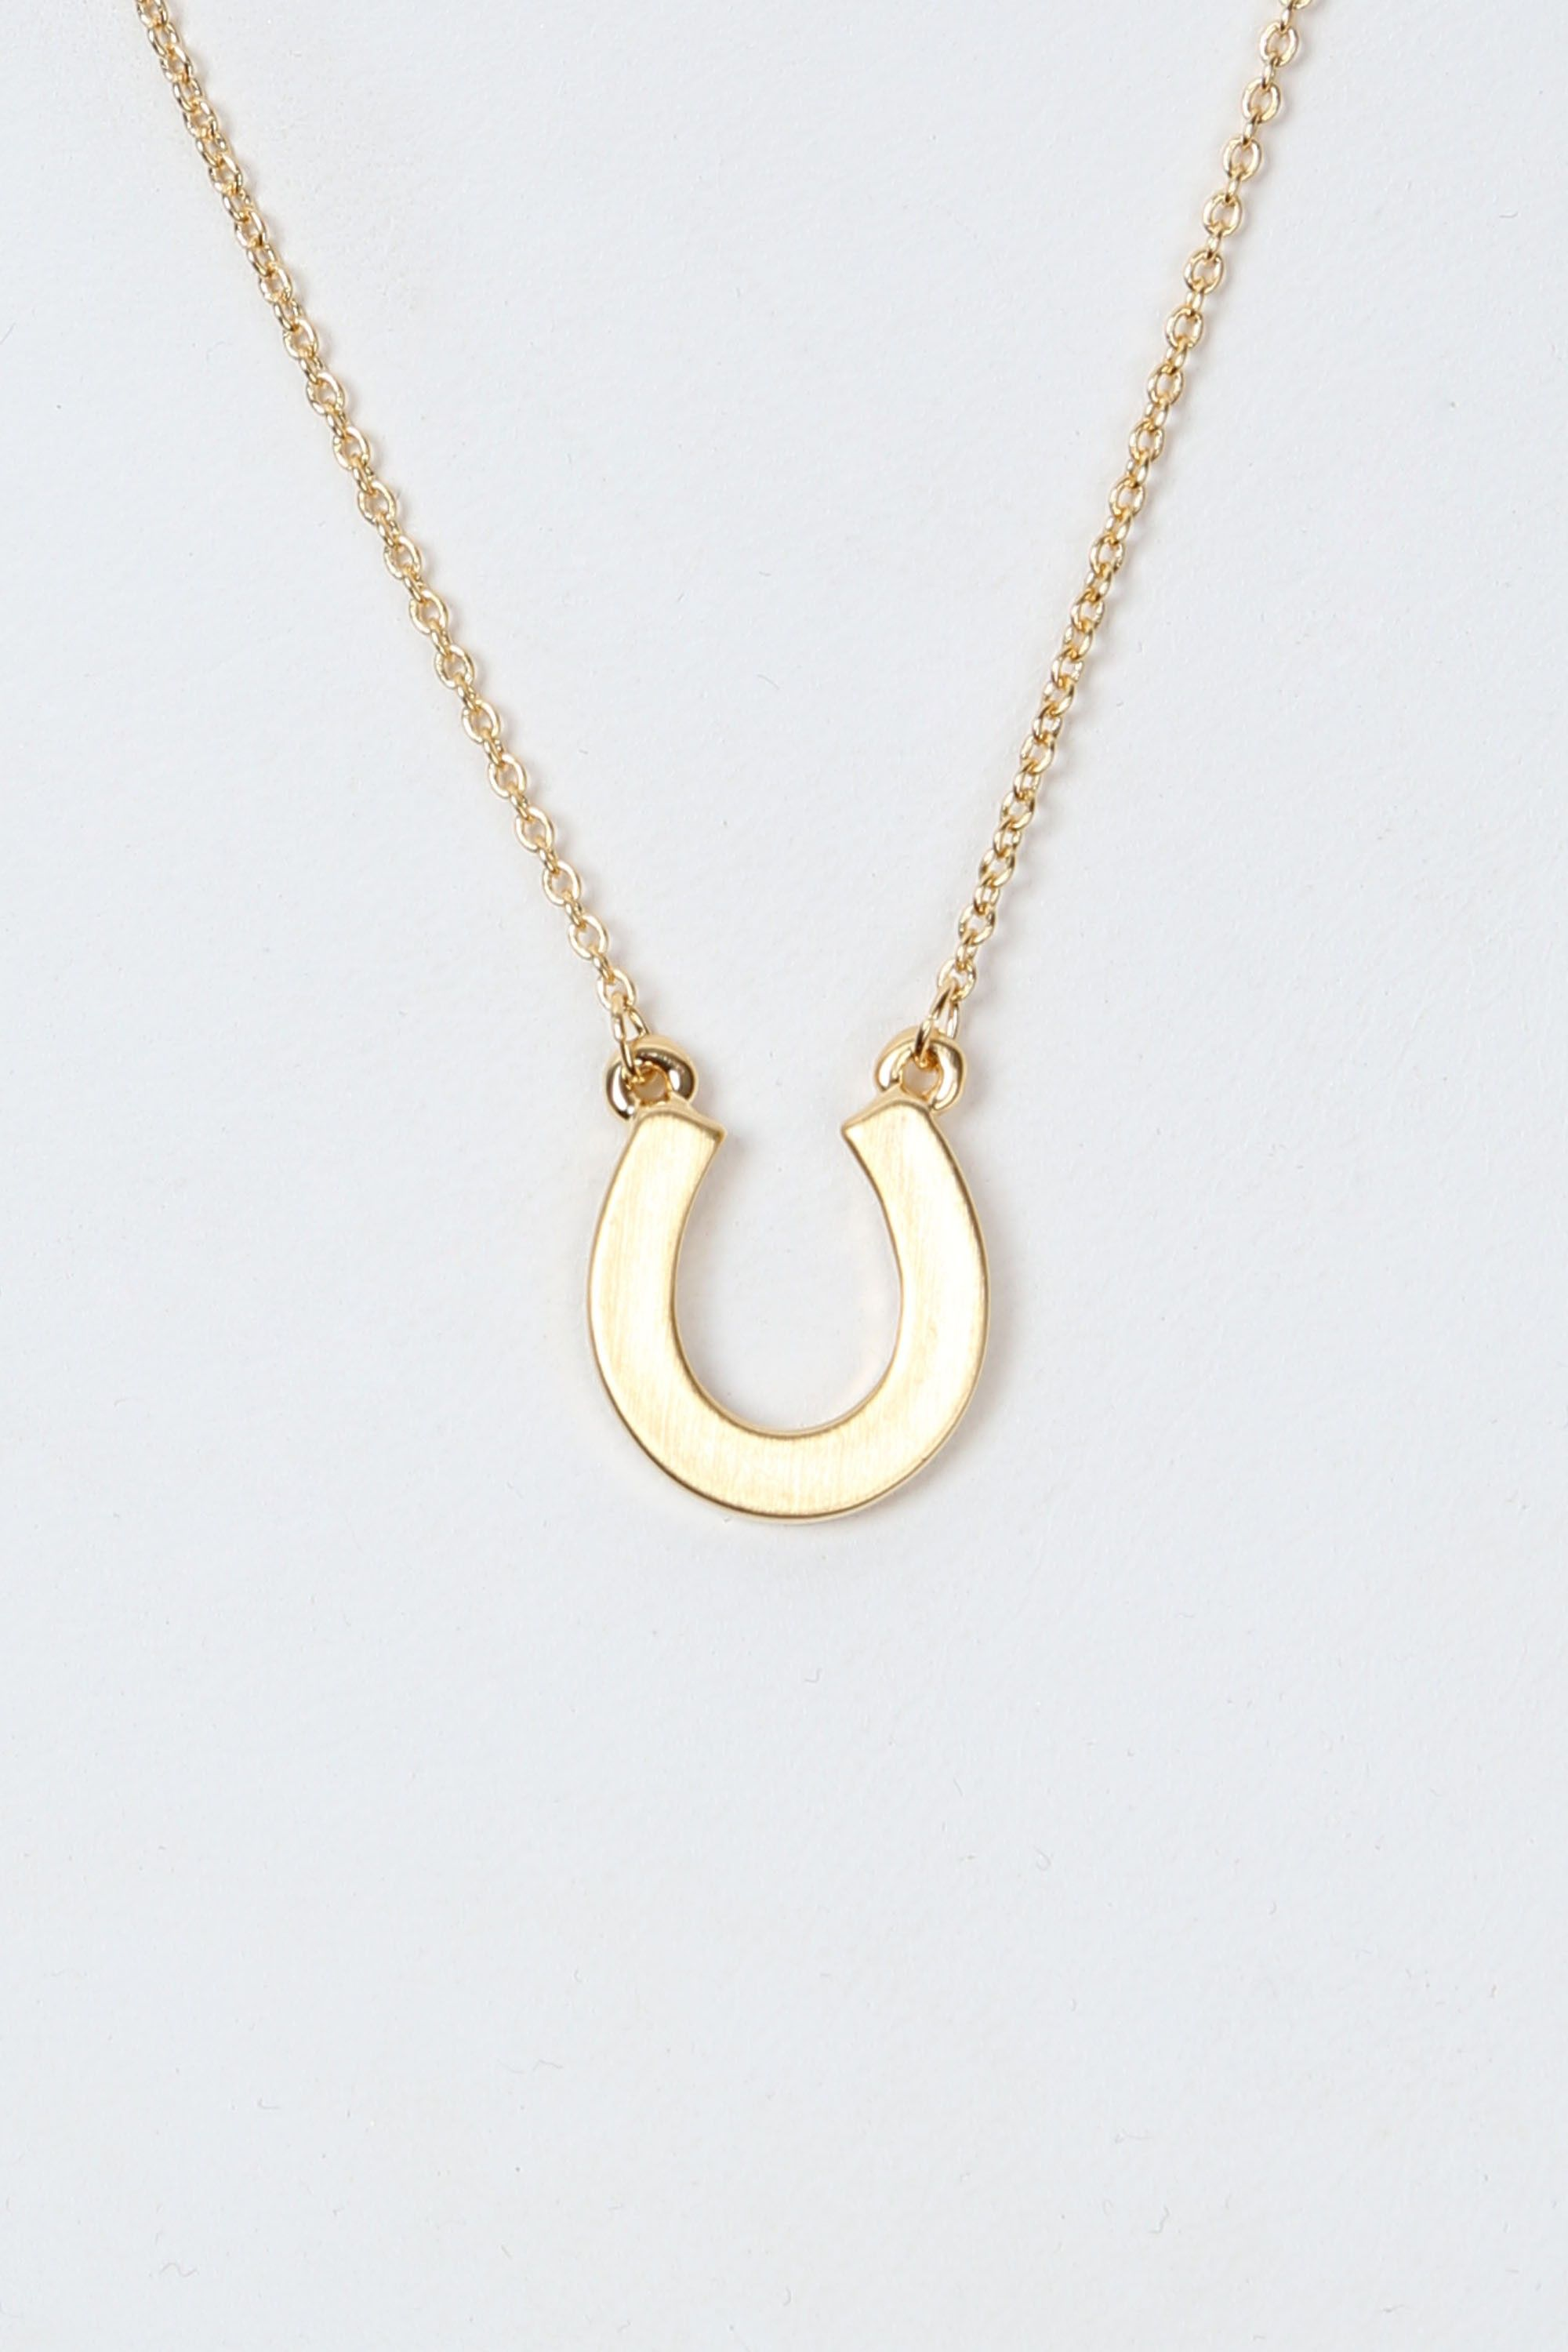 pinterest clothing style lucky necklace horse pin dream necessary